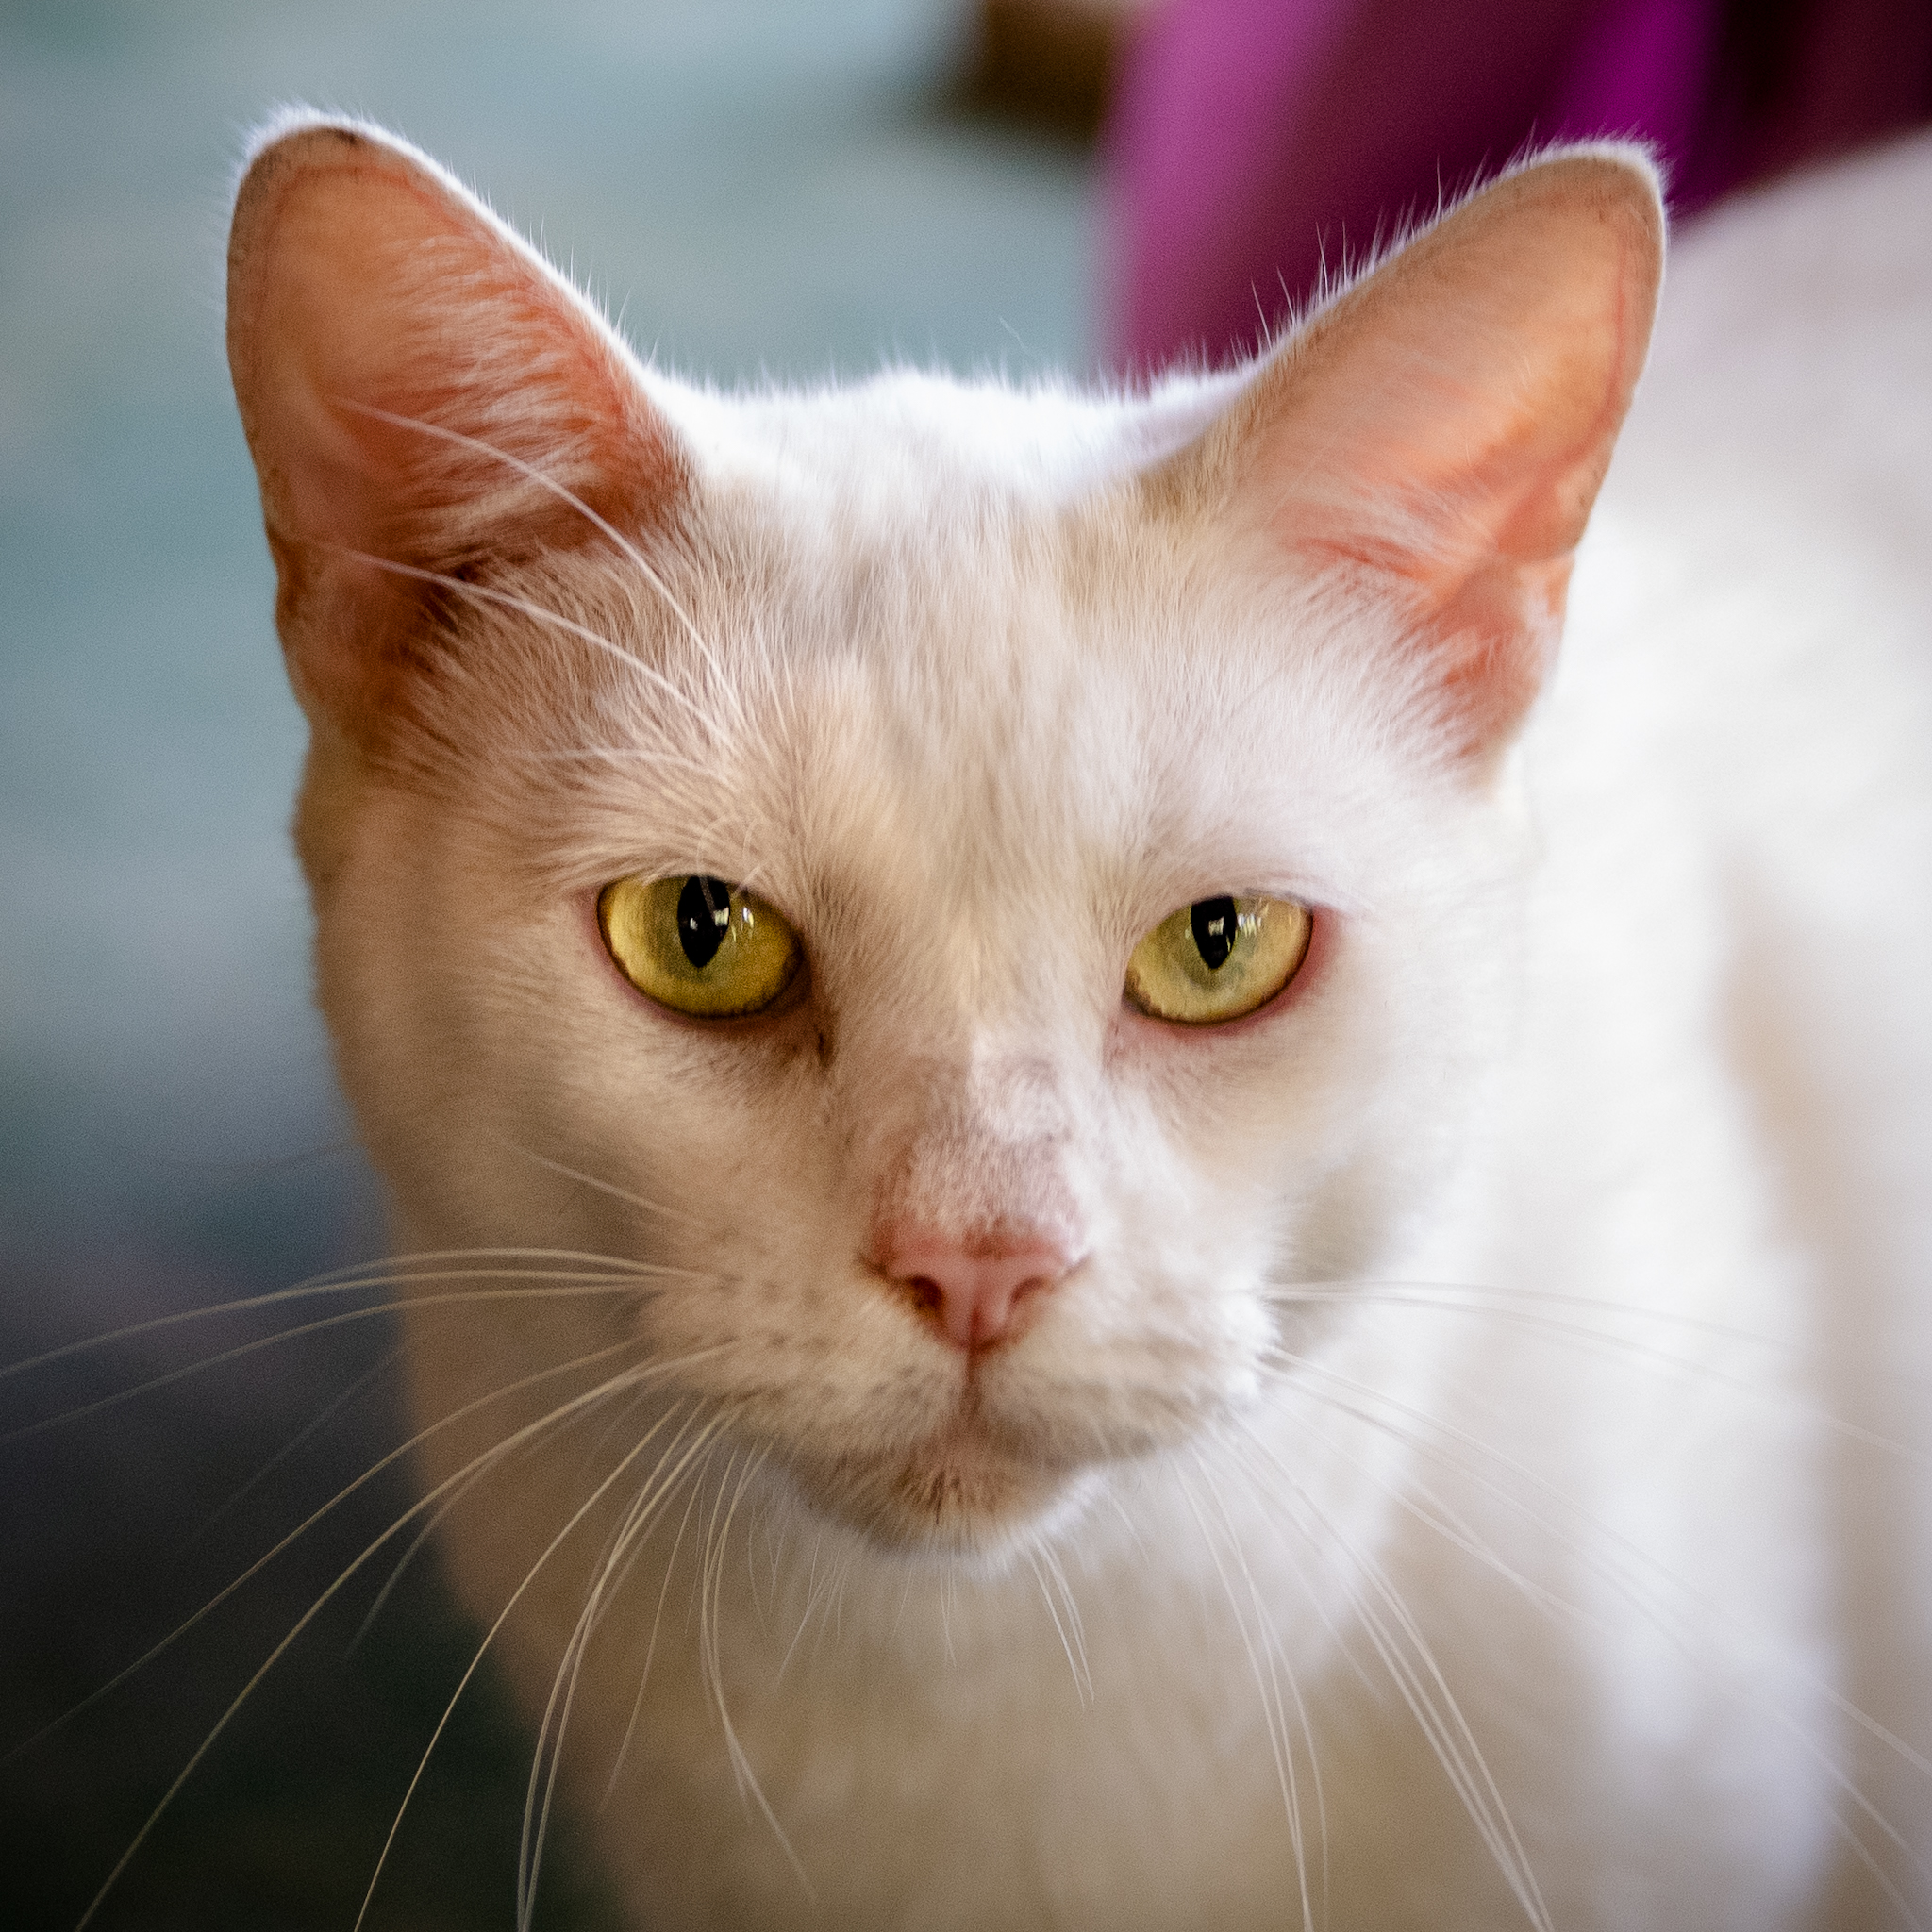 A close up head shot of a white cat